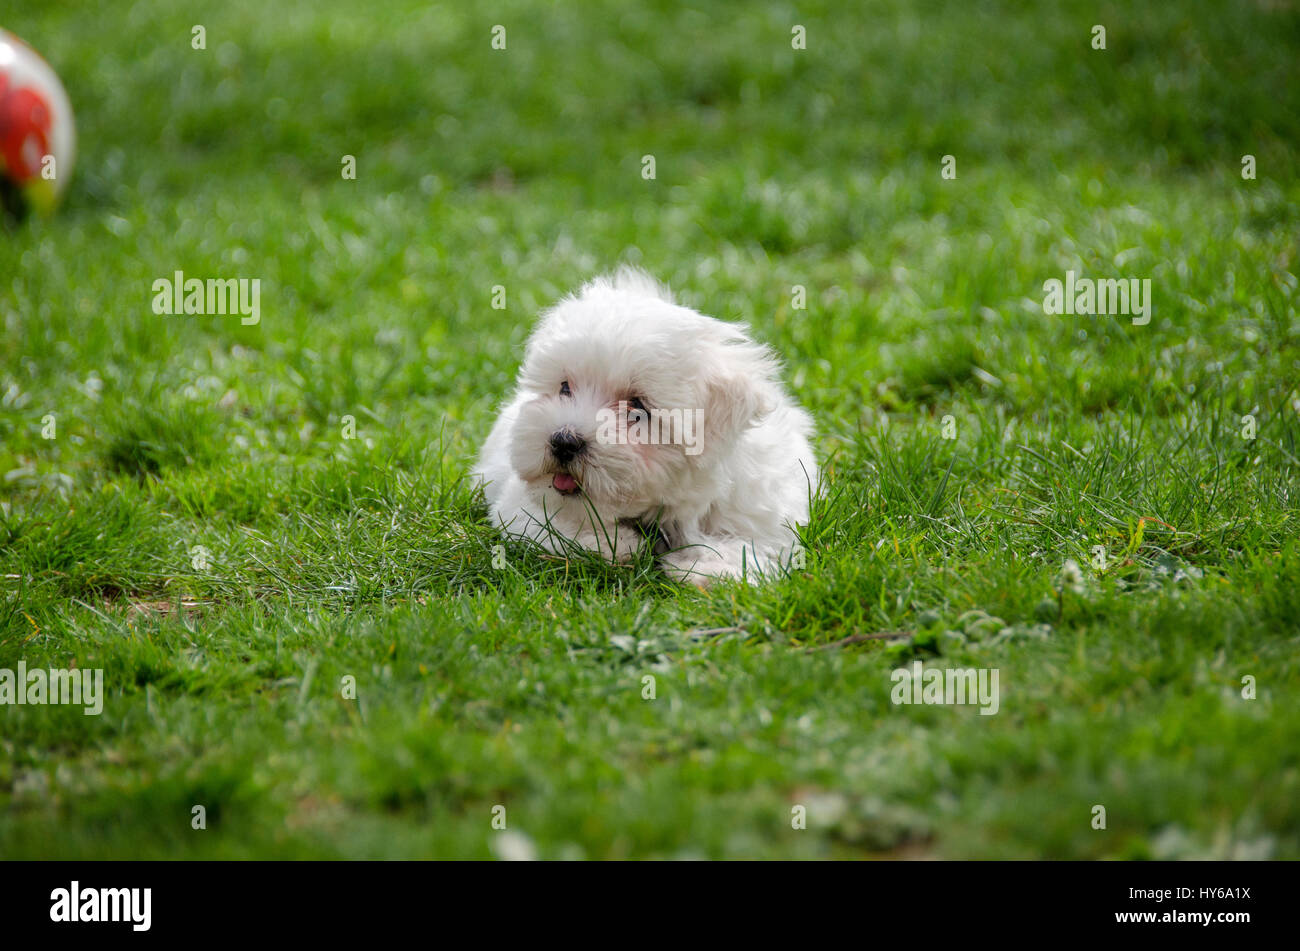 Cute puppy - Maltese dog breed - Stock Image